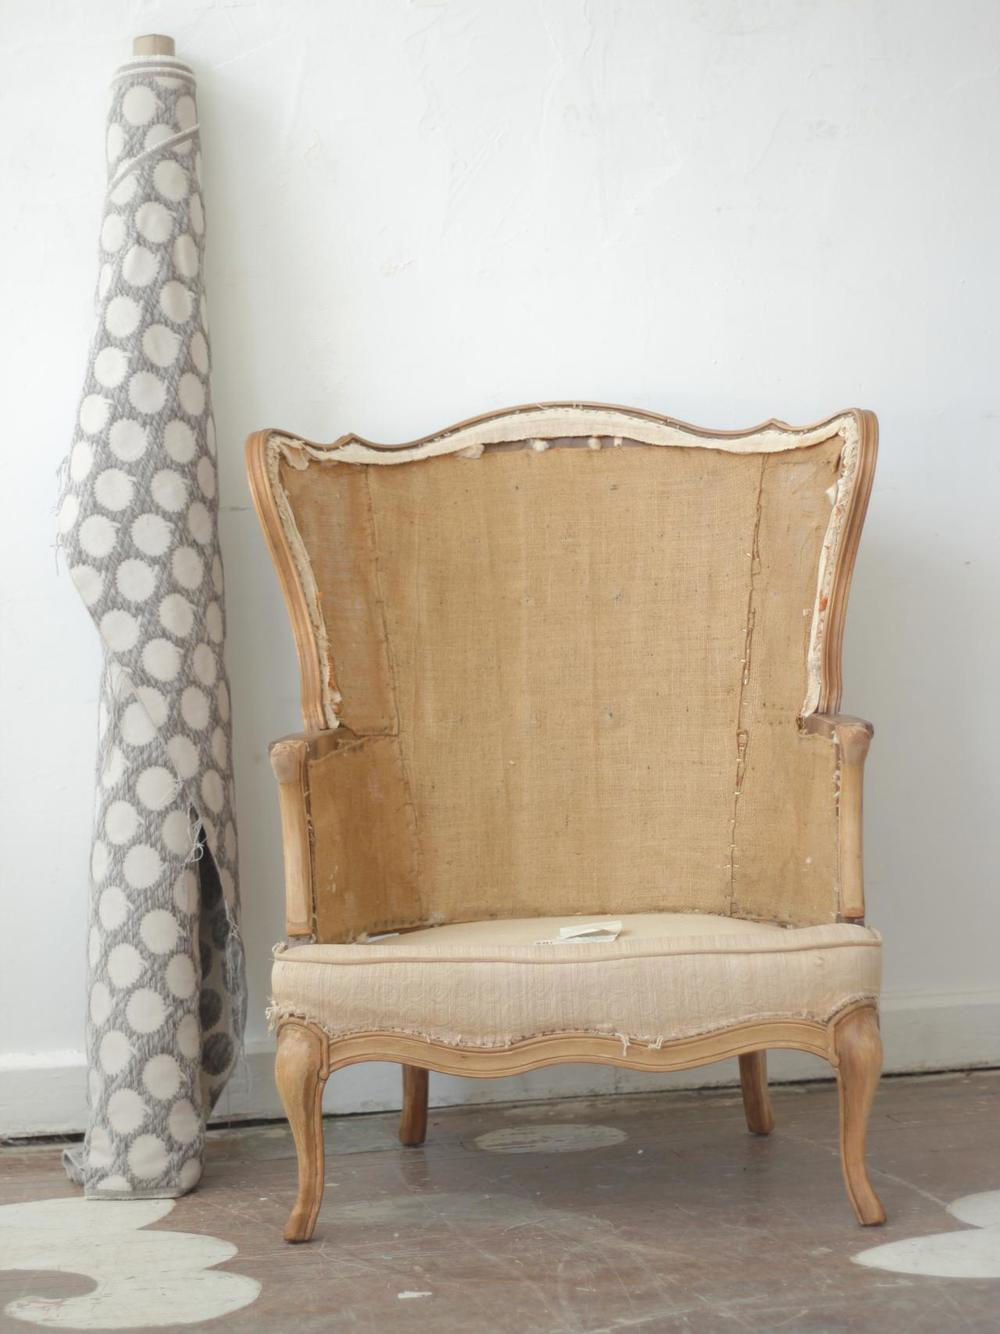 Original_Jeanine-Hays-Uphostery-Story-Furniture-Before-Wingback-7489_v.jpg.rend.hgtvcom.1280.1707.jpeg